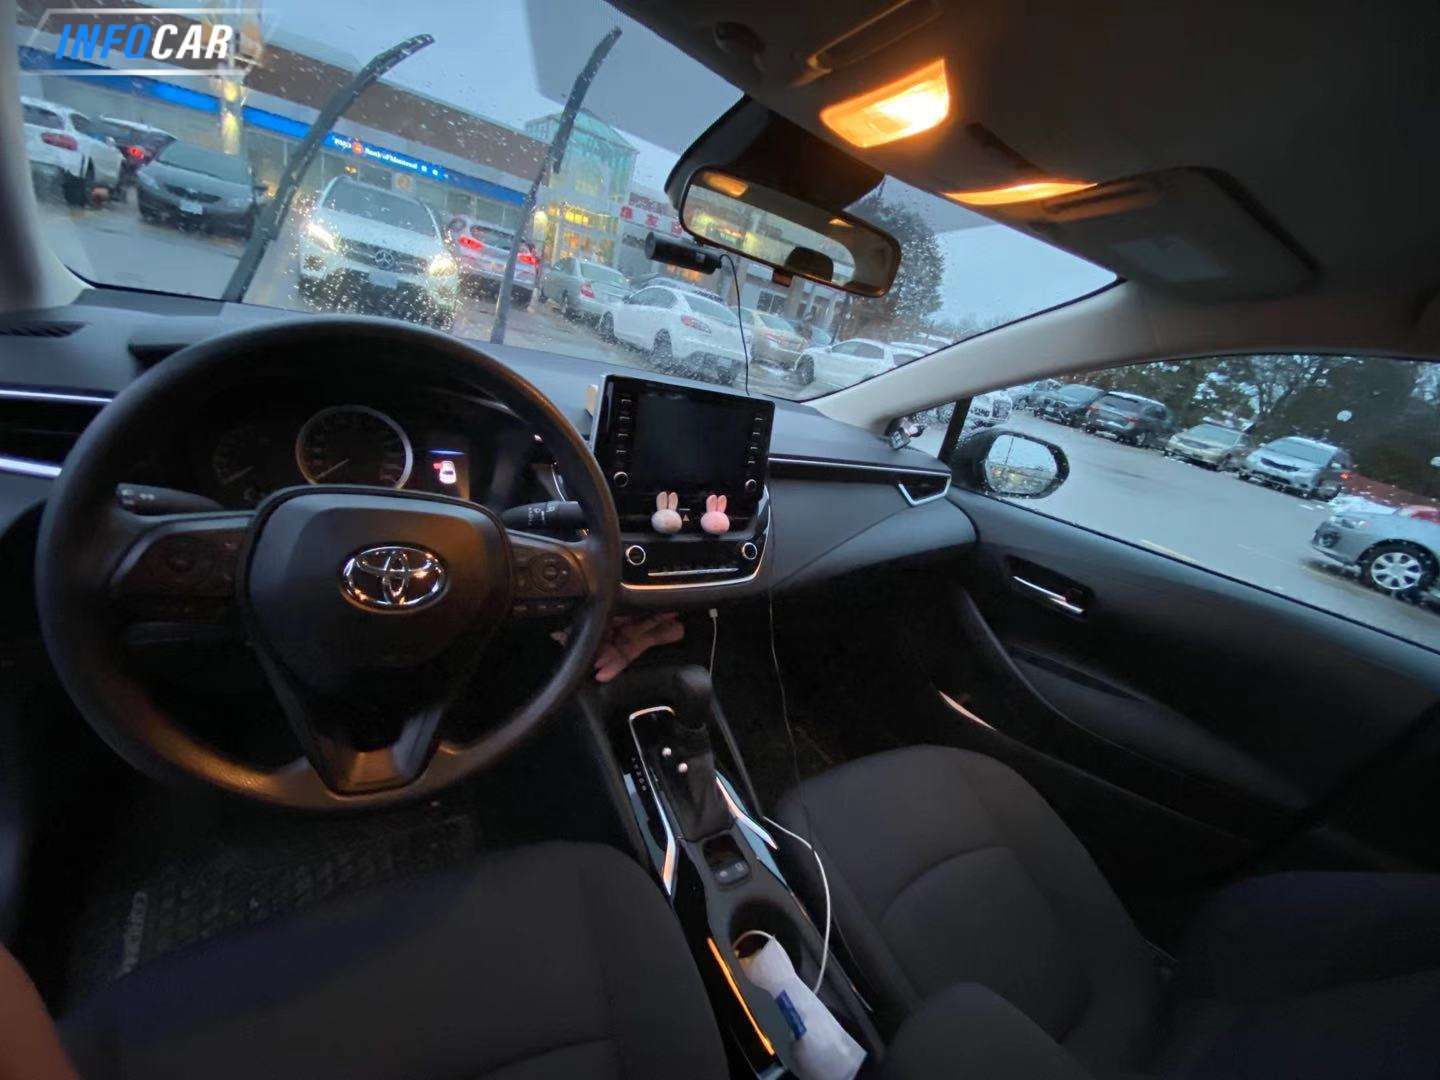 2020 Toyota Corolla LE - INFOCAR - Toronto's Most Comprehensive New and Used Auto Trading Platform